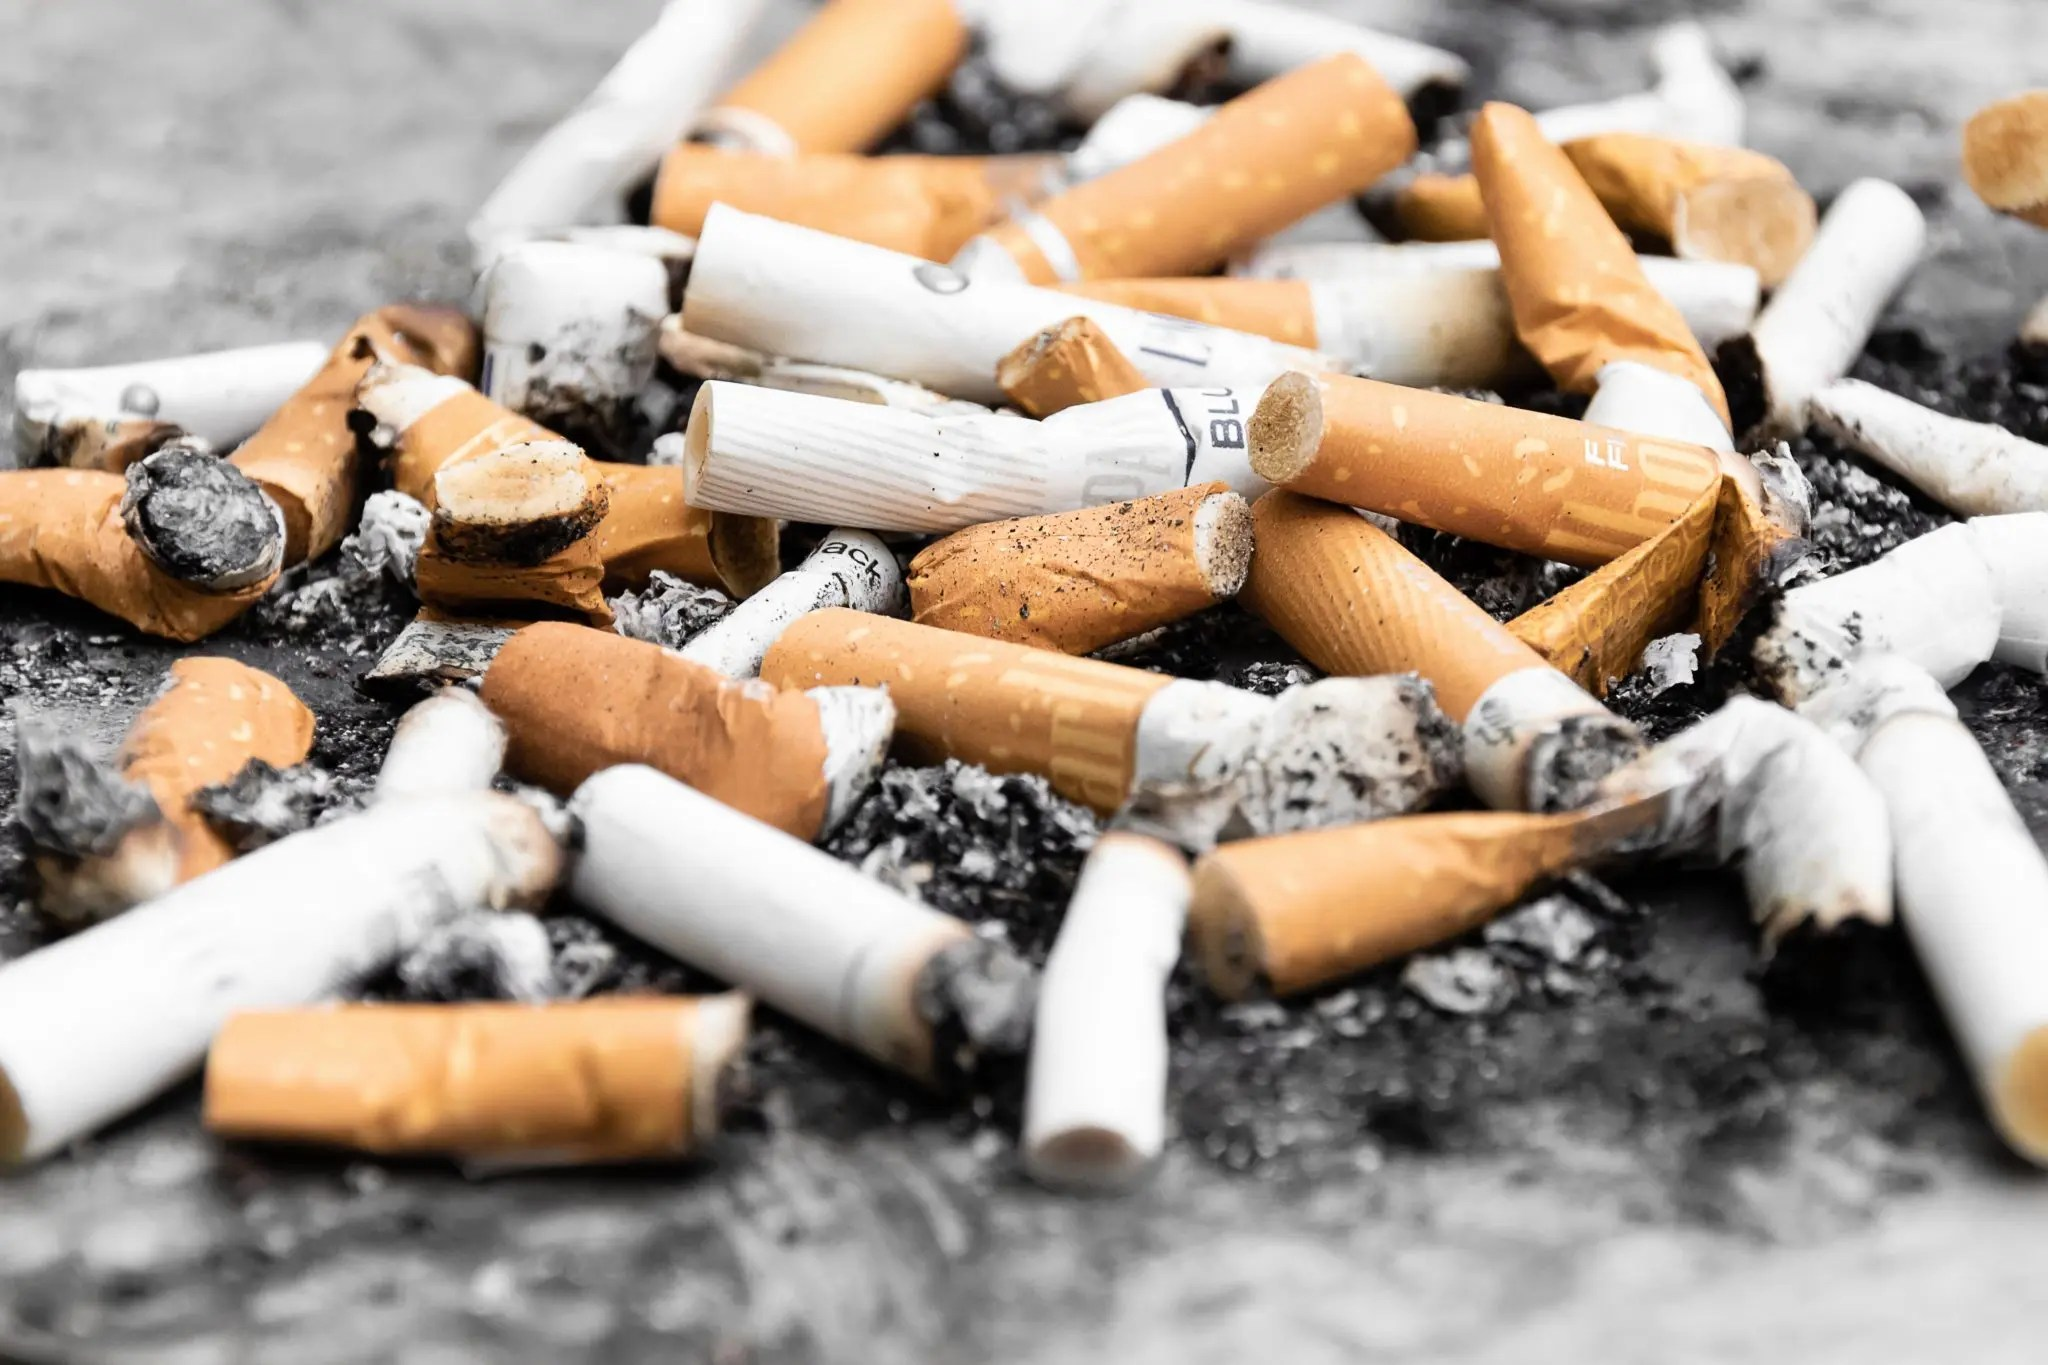 Does this anti-smoking drug cause heart problems?